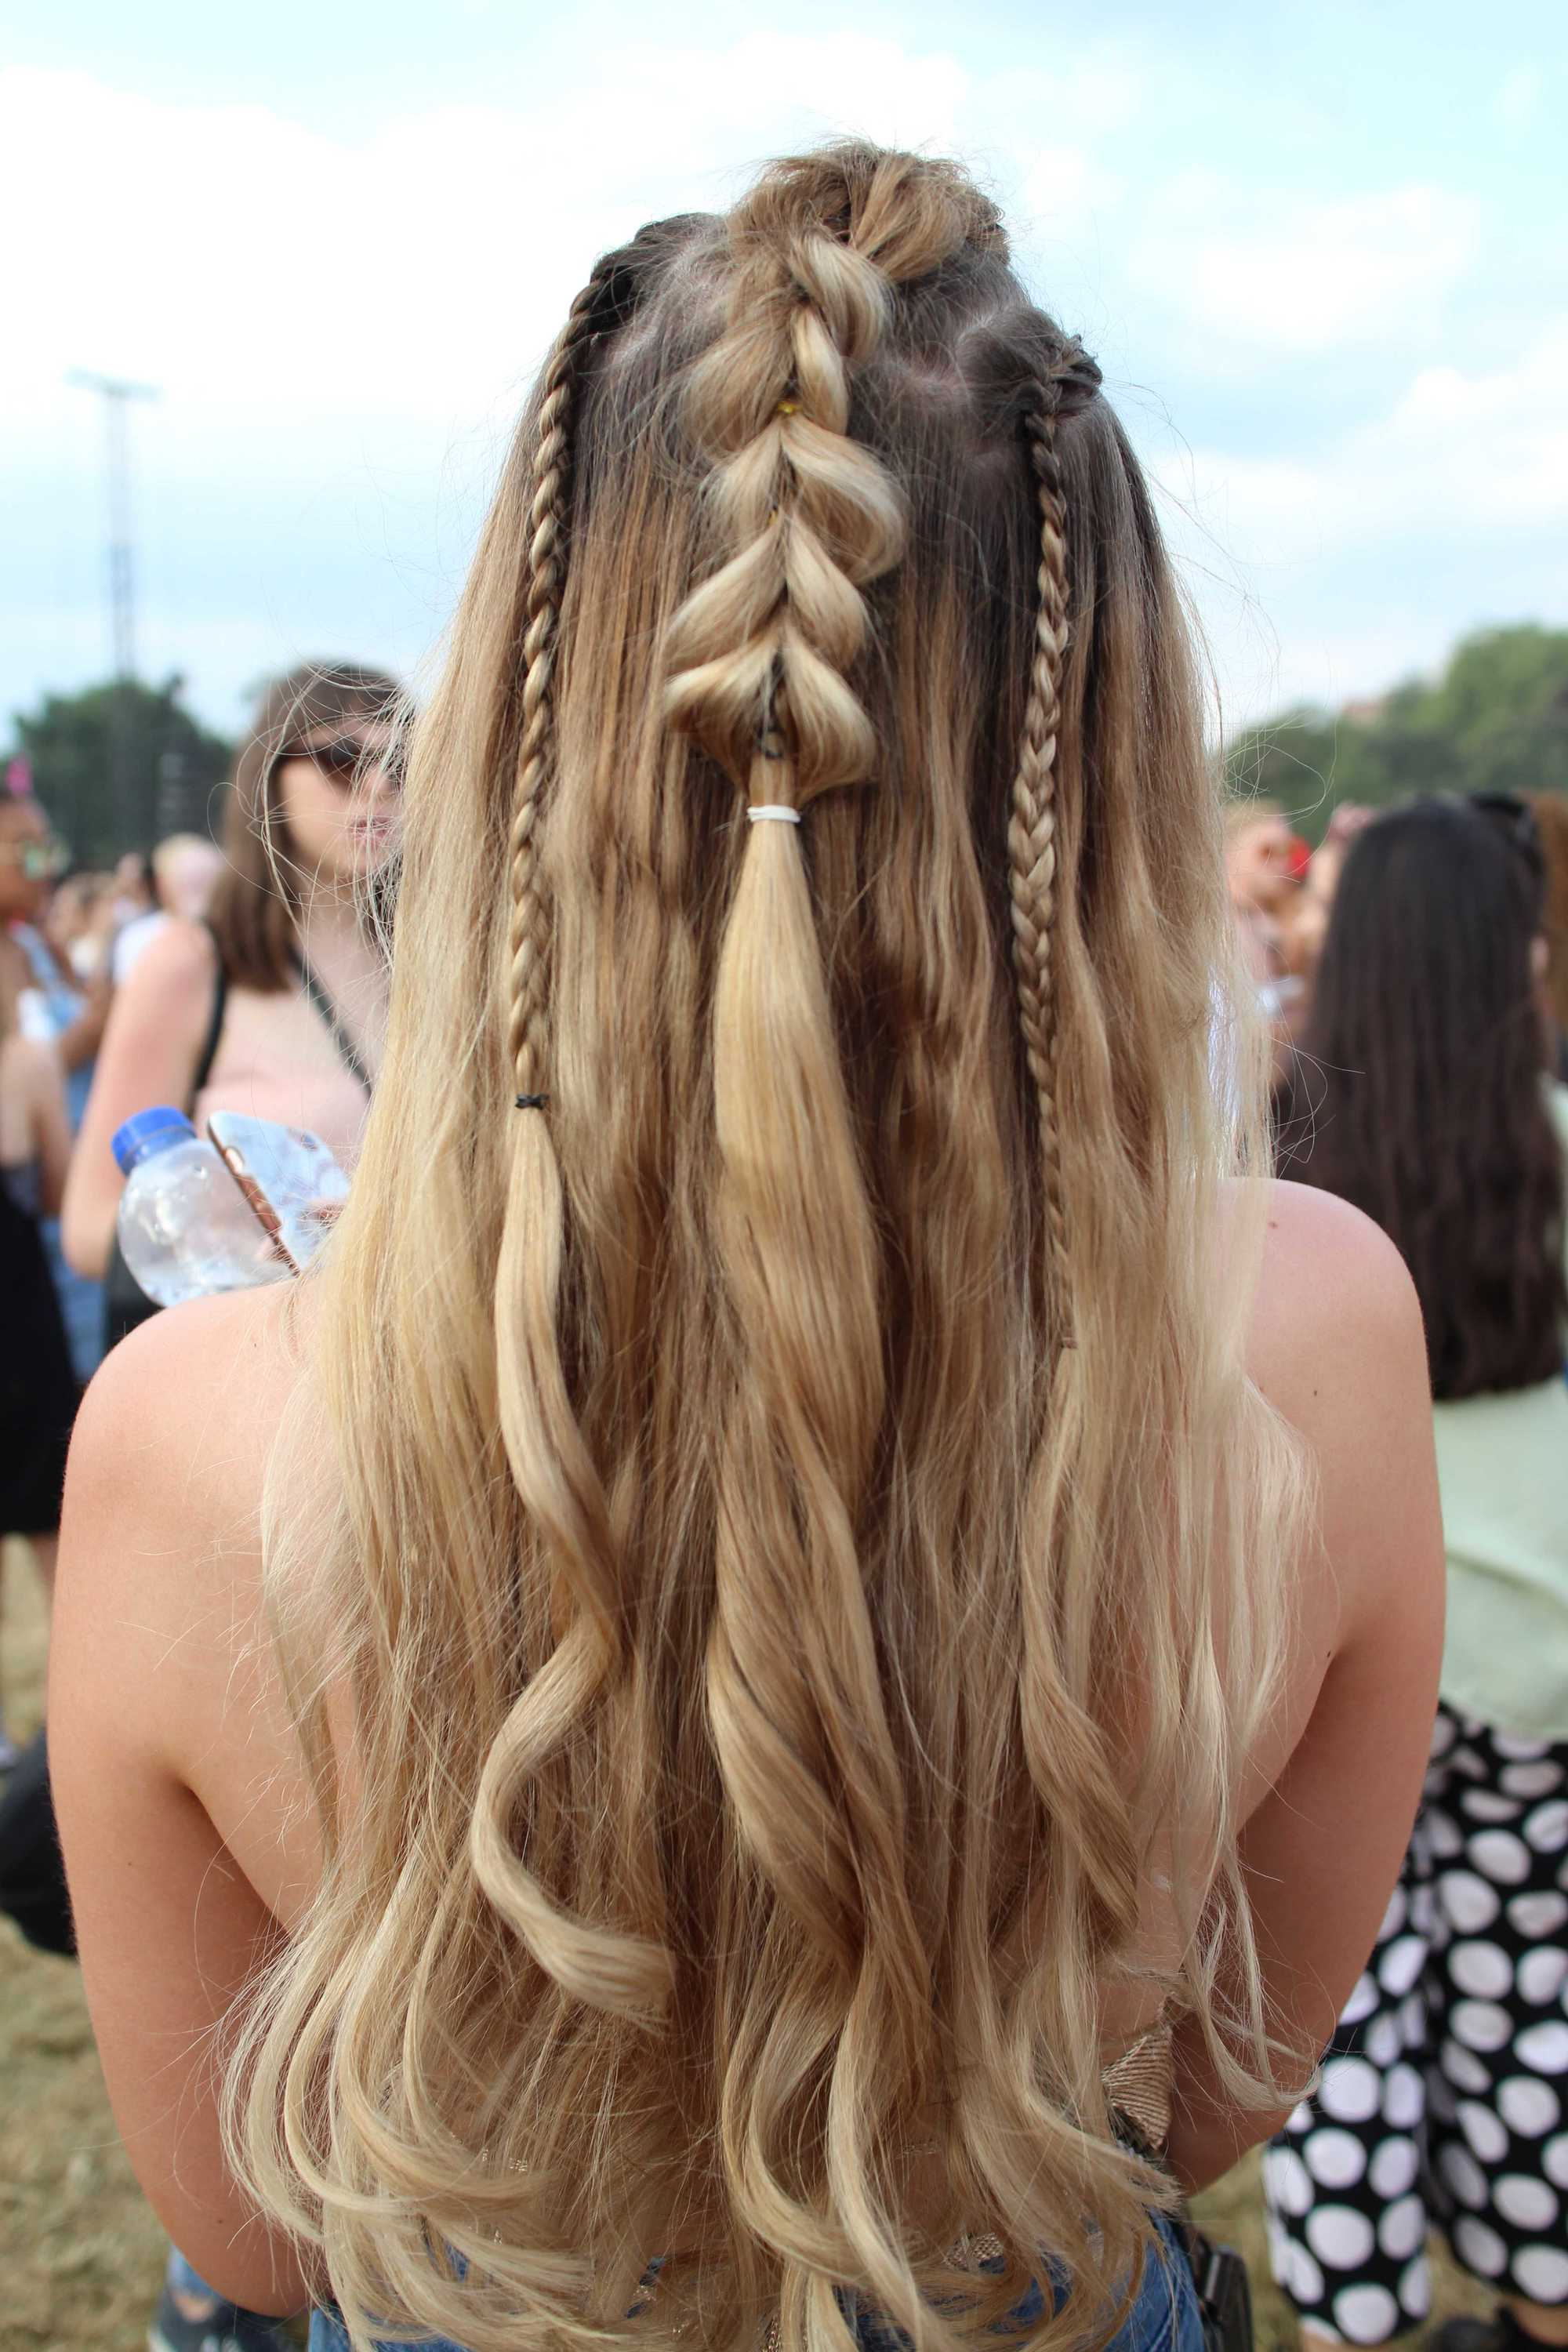 Favorite Blue Braided Festival Hairstyles In 19 Festival Braids It Girls Will Be Wearing This Summer (View 17 of 20)